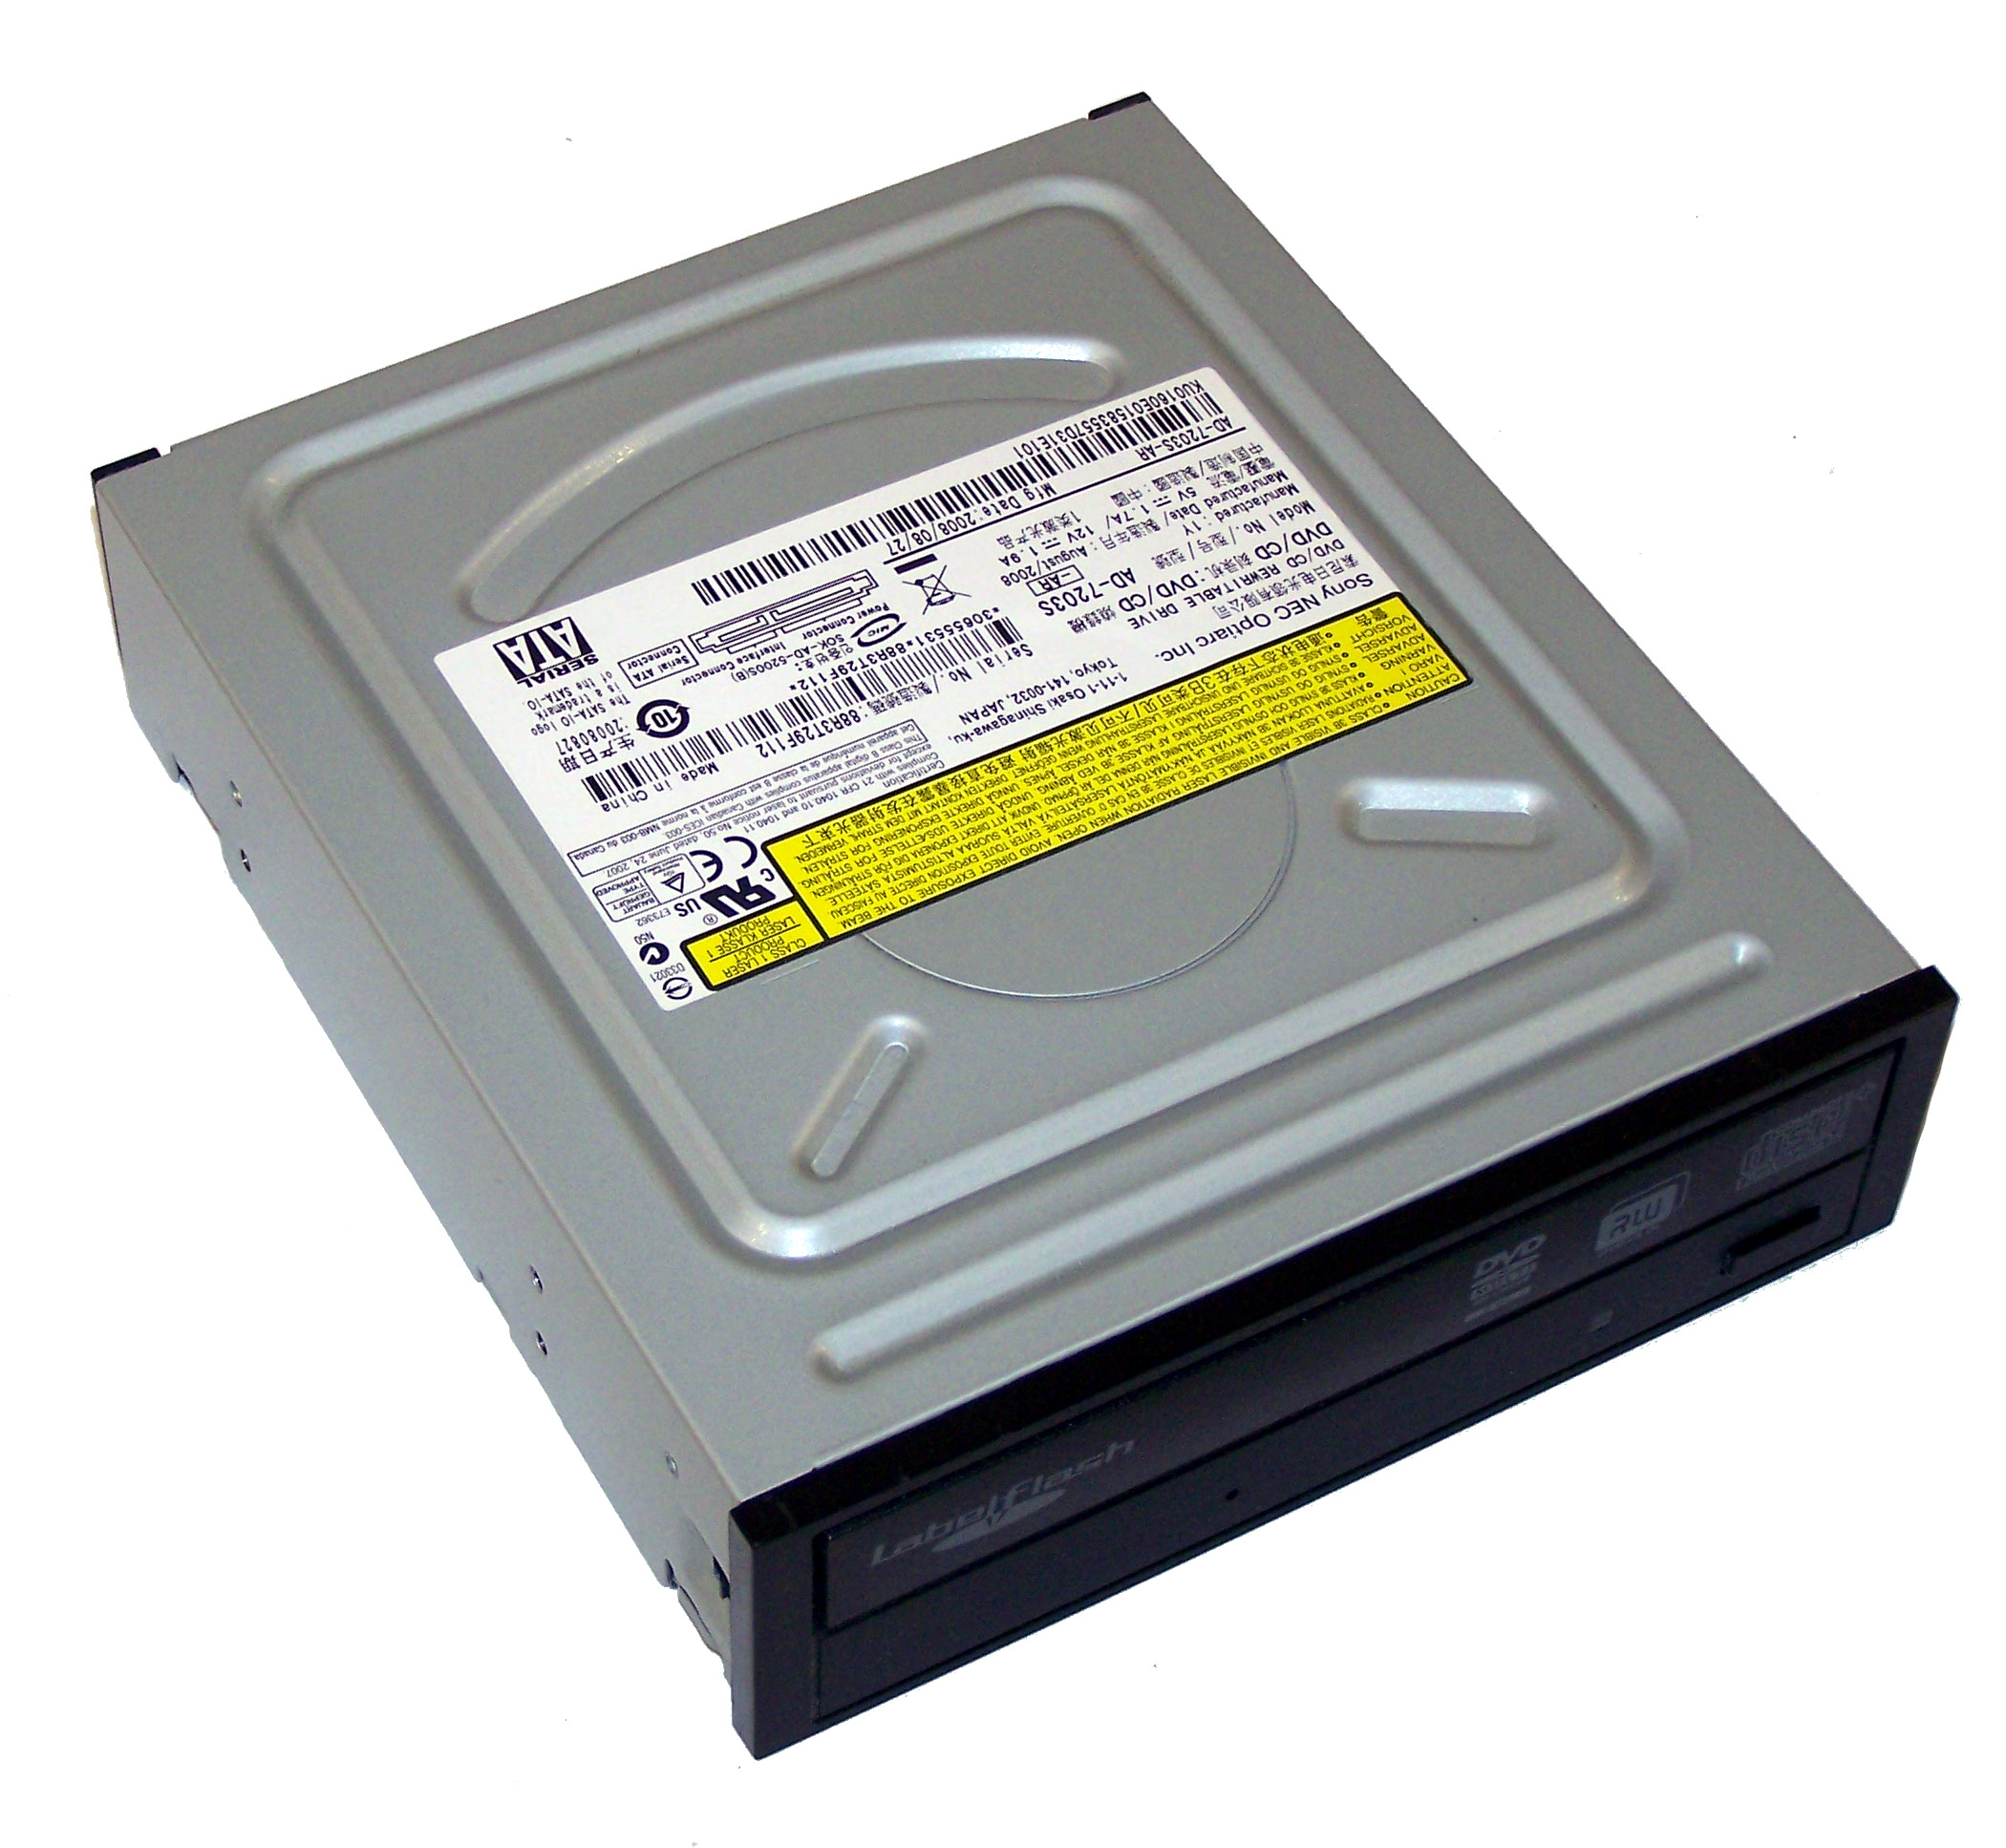 OPTIARC DVD RW AD-7200S ATA DEVICE DRIVER (2019)